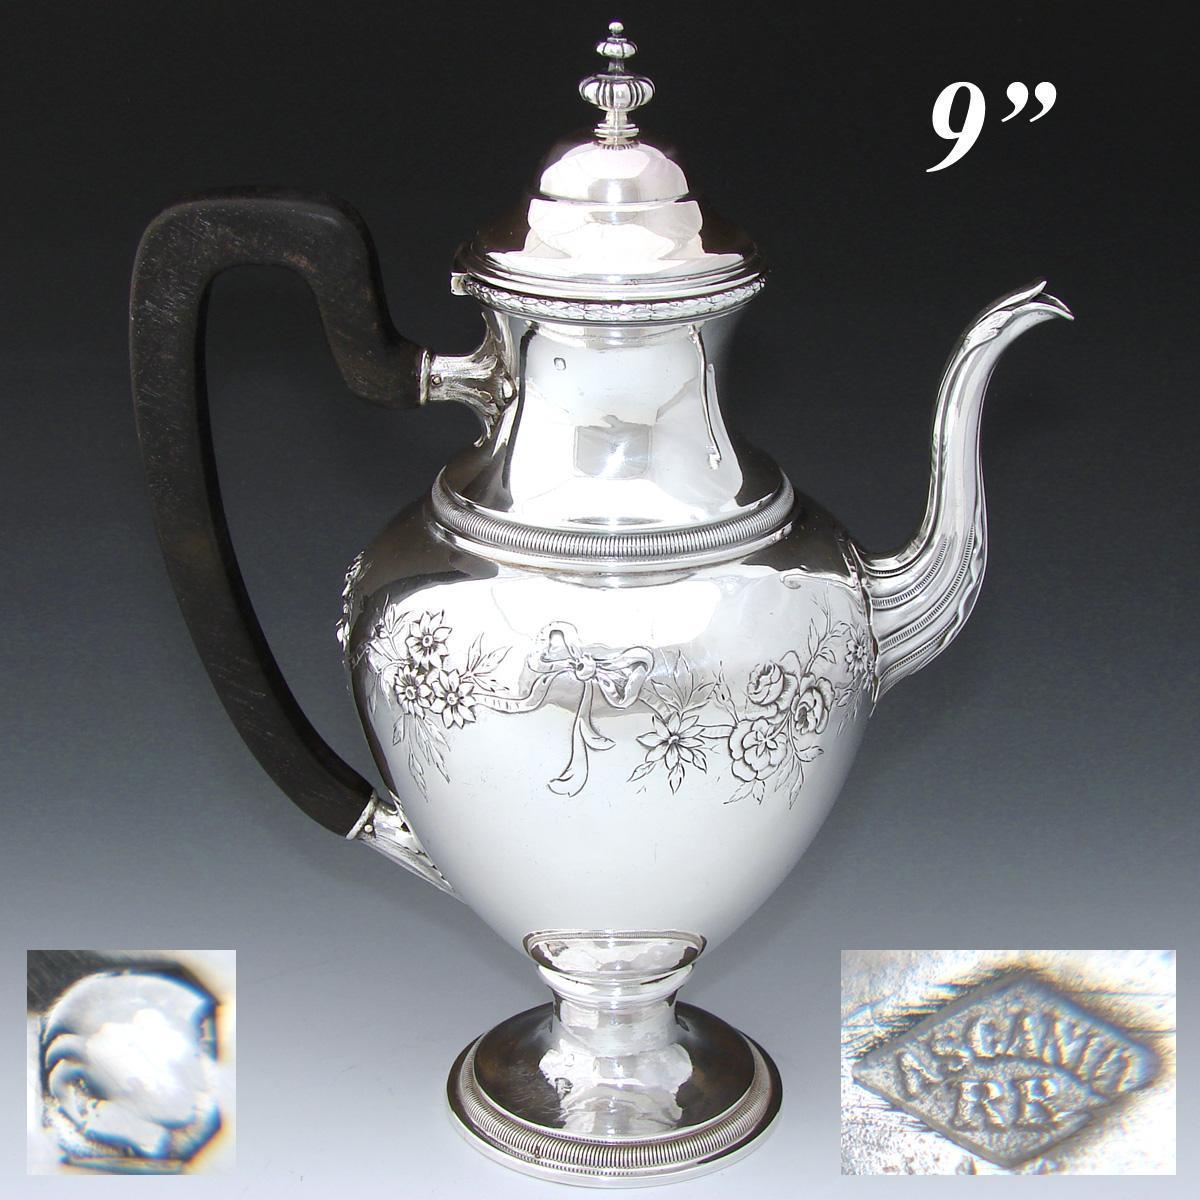 "Delightful Antique French Sterling Silver 8.75"" Coffee or Tea Pot, Bow & Ribbon, Floral Swags"